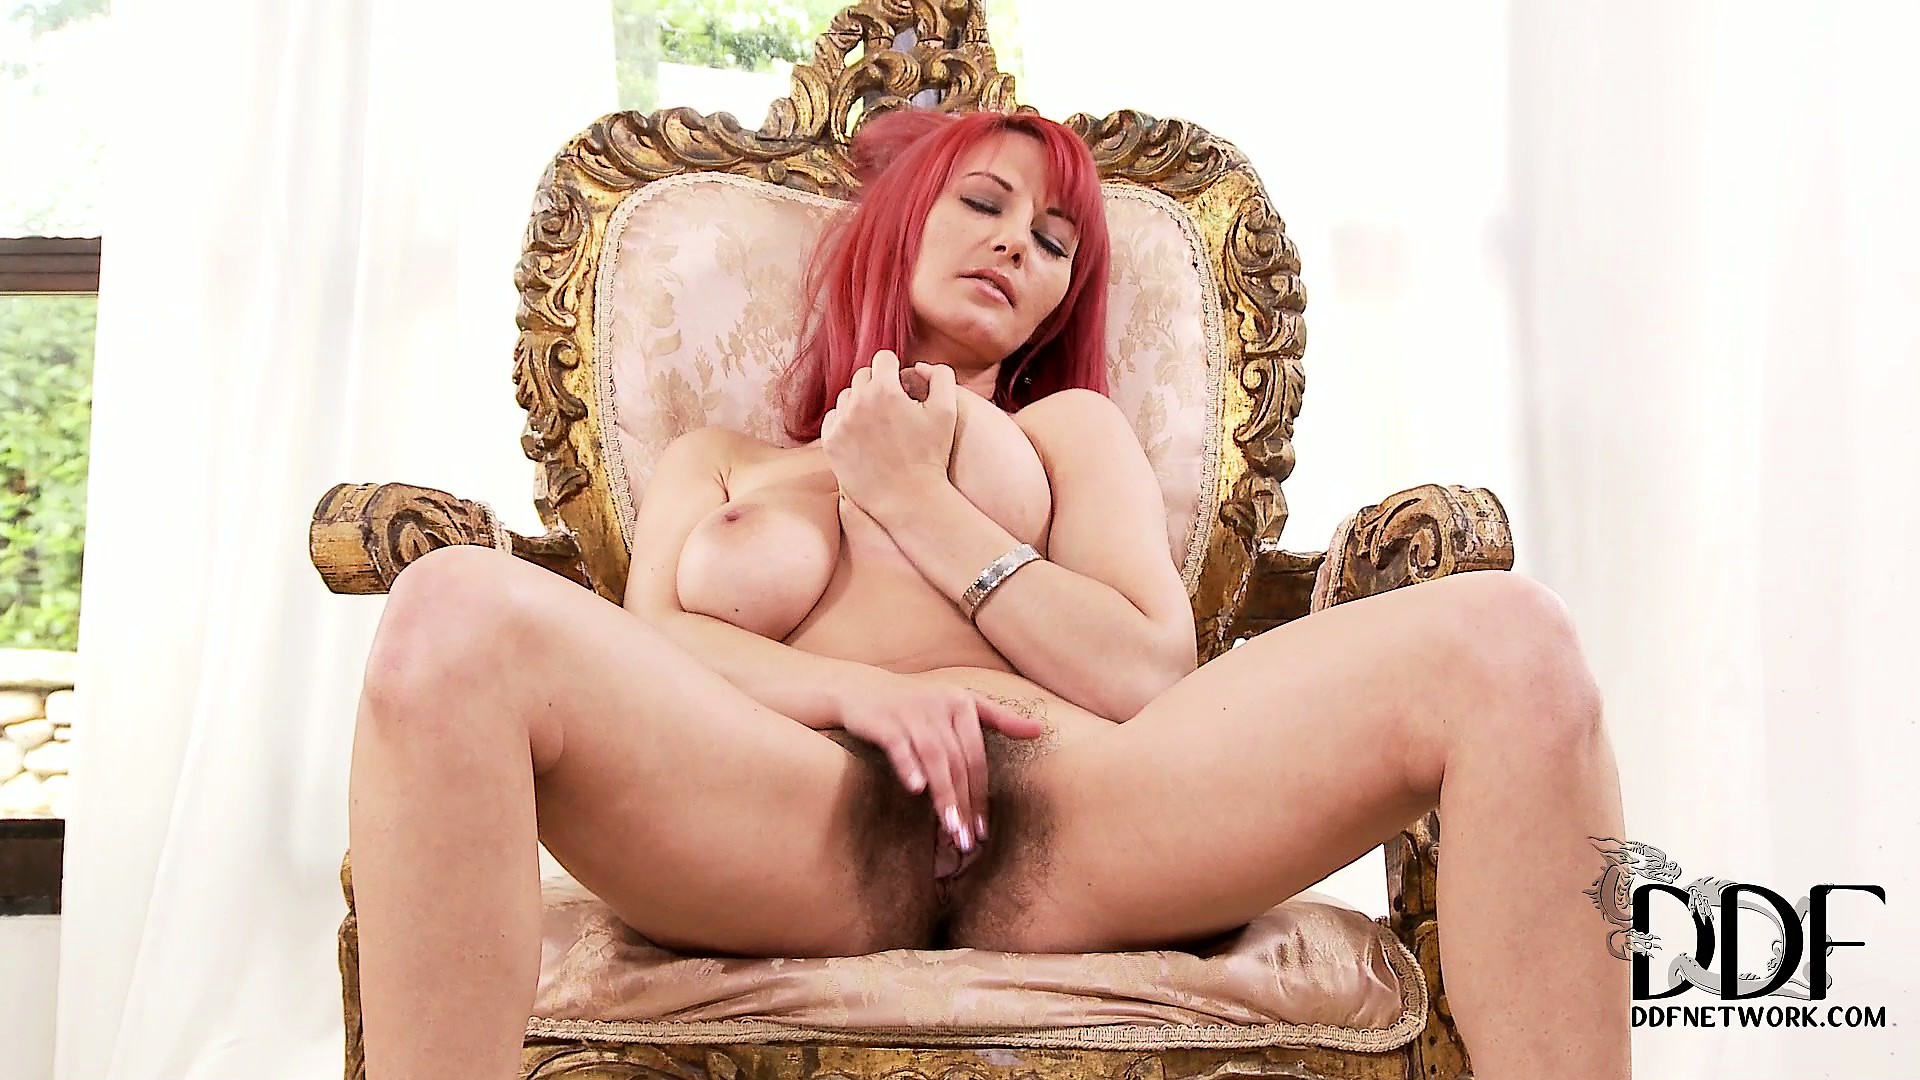 Porno Video of Fiery Redhead Has A Nice Rack On Her Chest And A Warm Hair Pie Between Her Legs